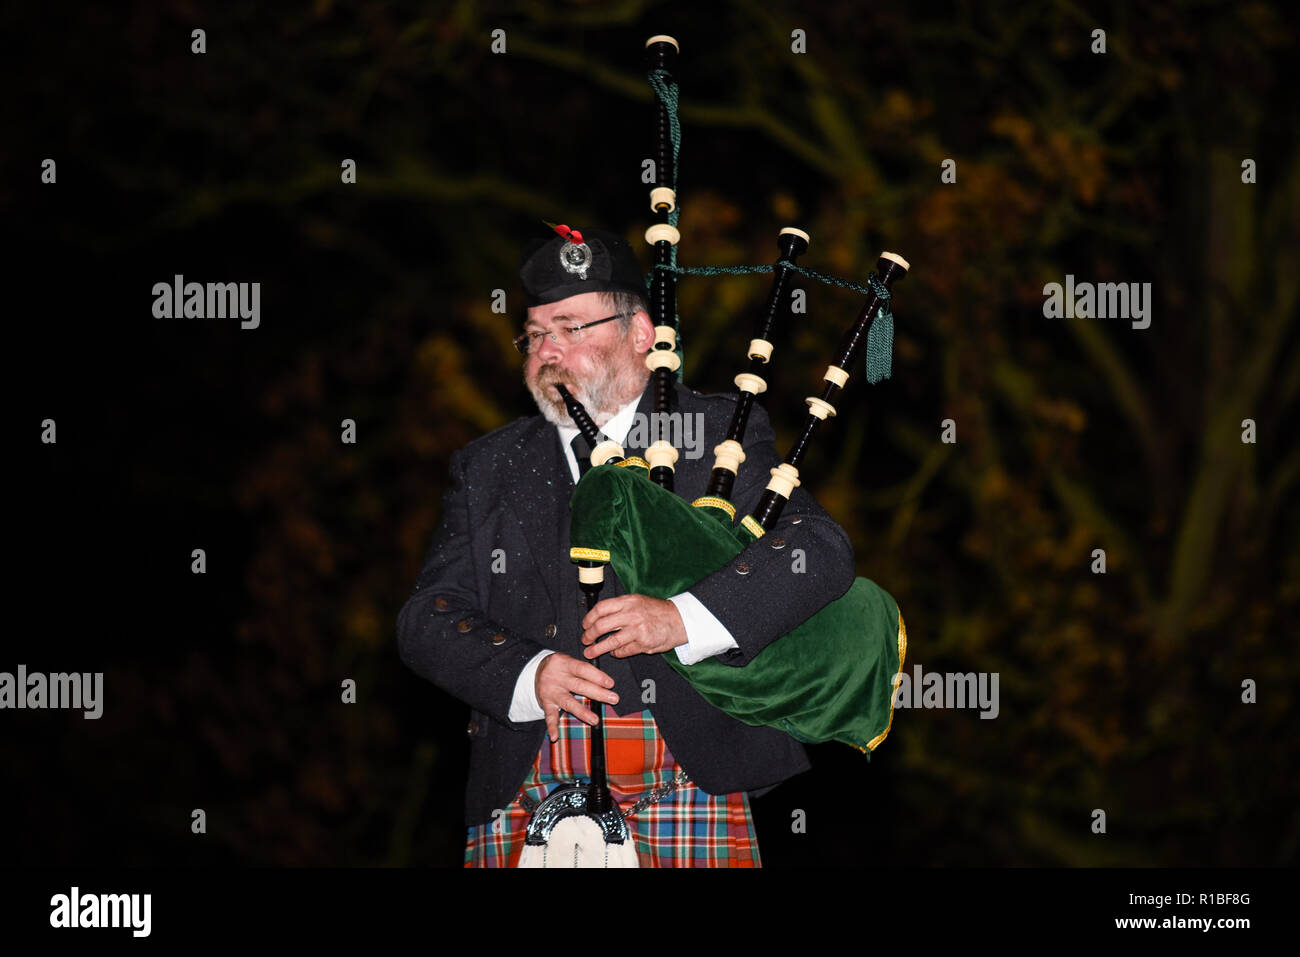 Southend Cenotaph, Clifftown Parade, Southend on Sea, Essex, UK. 11th November 2018. Pipers performed the Scottish Lament 'Battle's O'er' at the Southend Cenotaph at 06:00 as part of an international commemoration called Battle's Over to mark the end of the Great War and the guns falling silent. It will be the start of numerous events on Armistice Day. Piper John Marc Nagel from Normandy, France. Remembrance Sunday. Centenary of the end of World War One, the Great War, the First World War Stock Photo